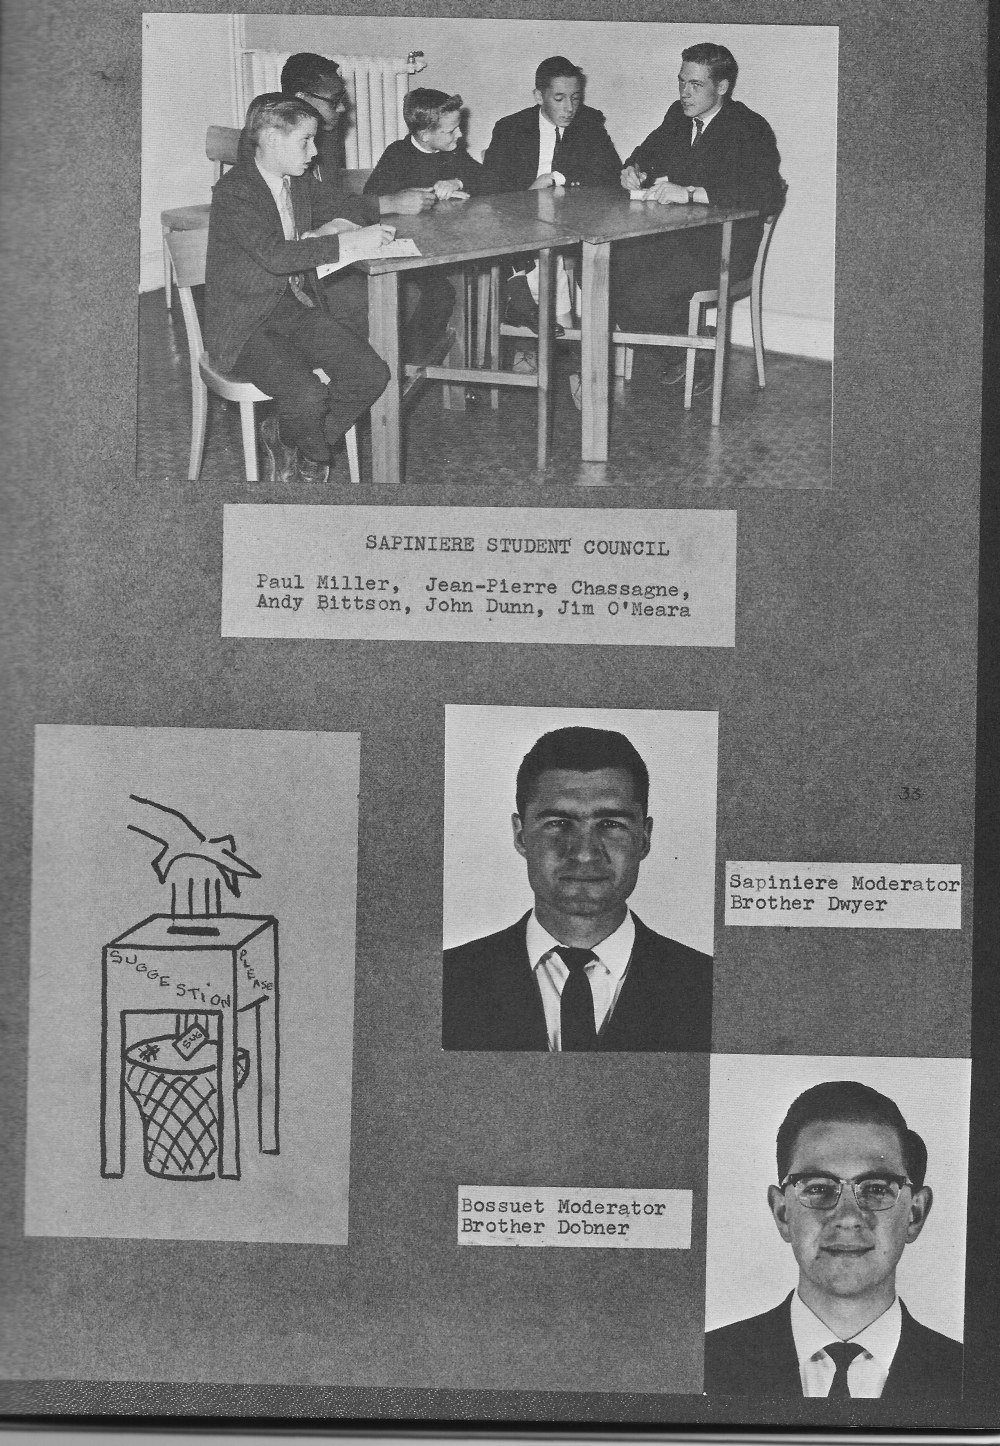 Student Council Photos  2 for for Villa Saint Jean International School  1964 Yearbook Le Chamois